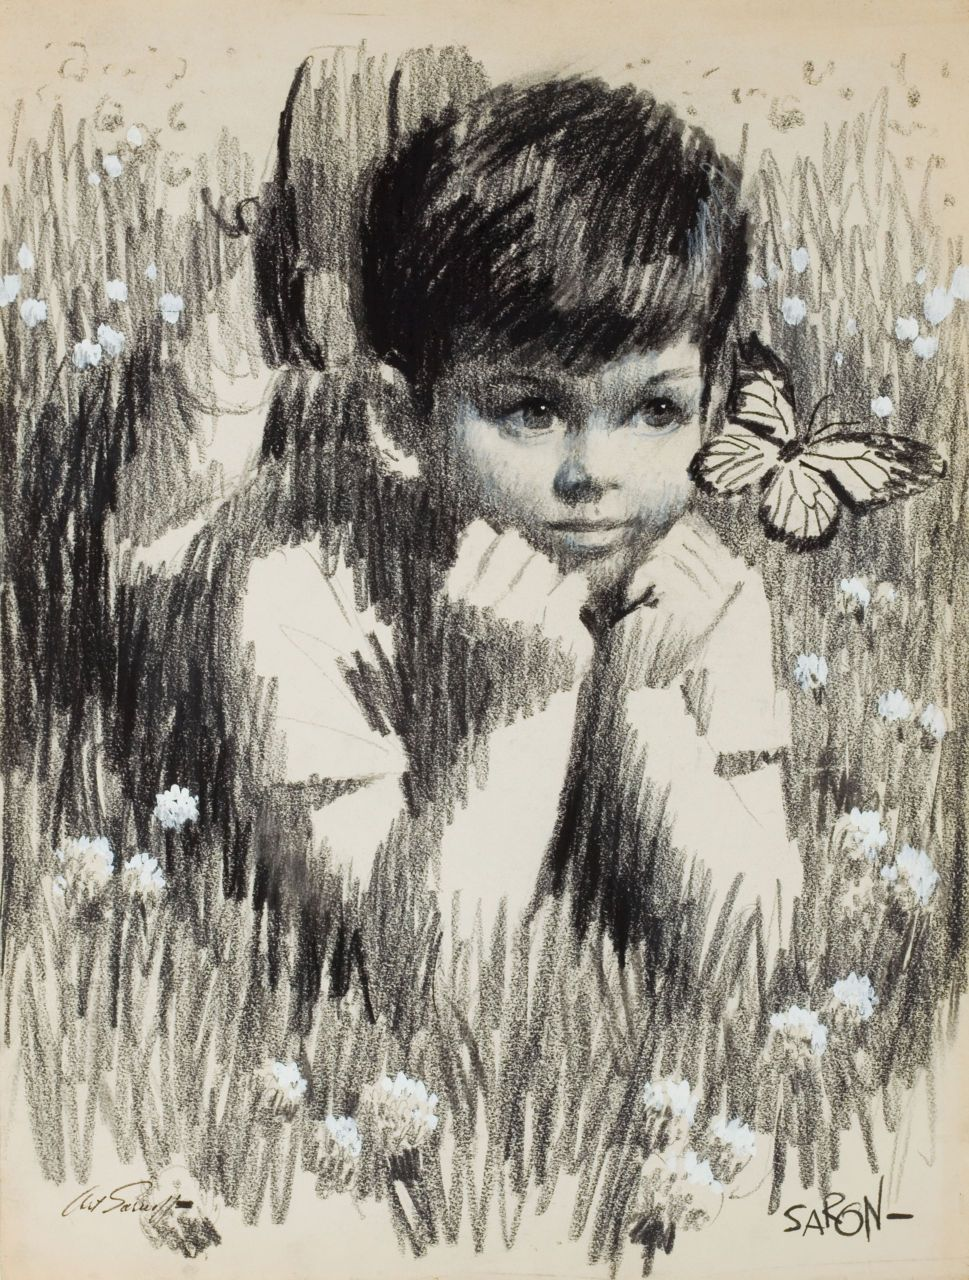 Boy slaying in grass looking at a butterfly pencil stroke drawing